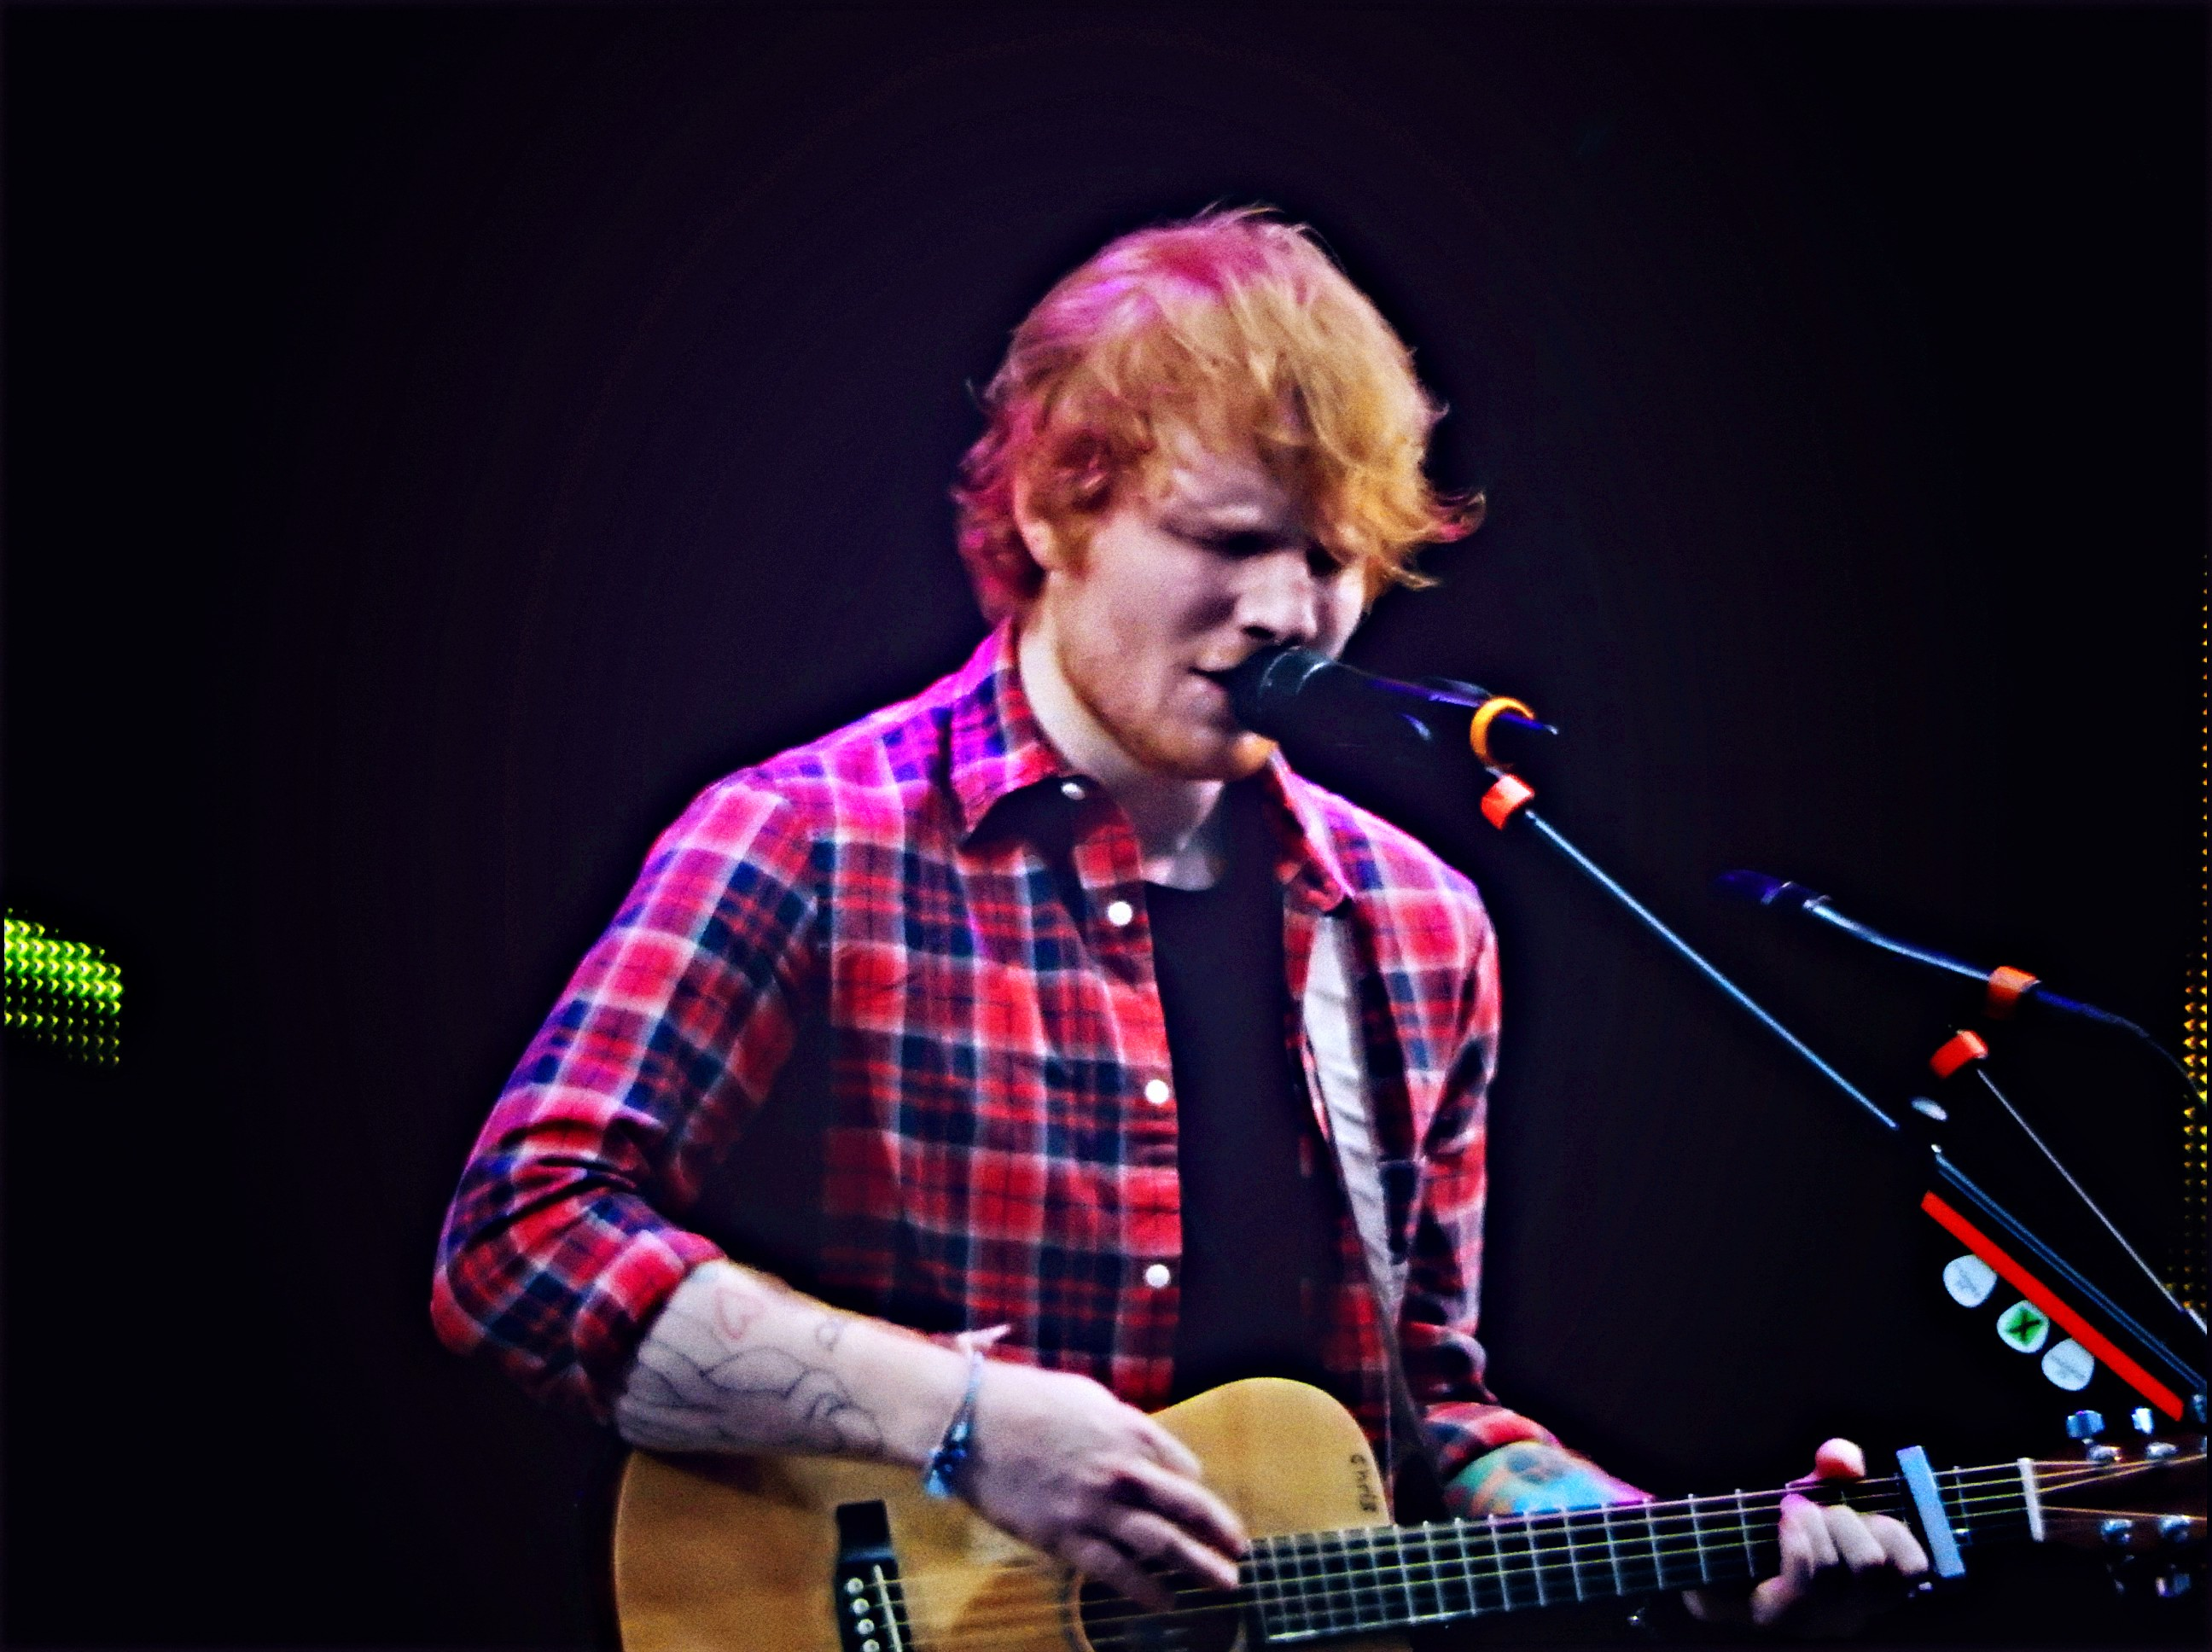 ed sheeran  Ed Sheeran - Wikipedia